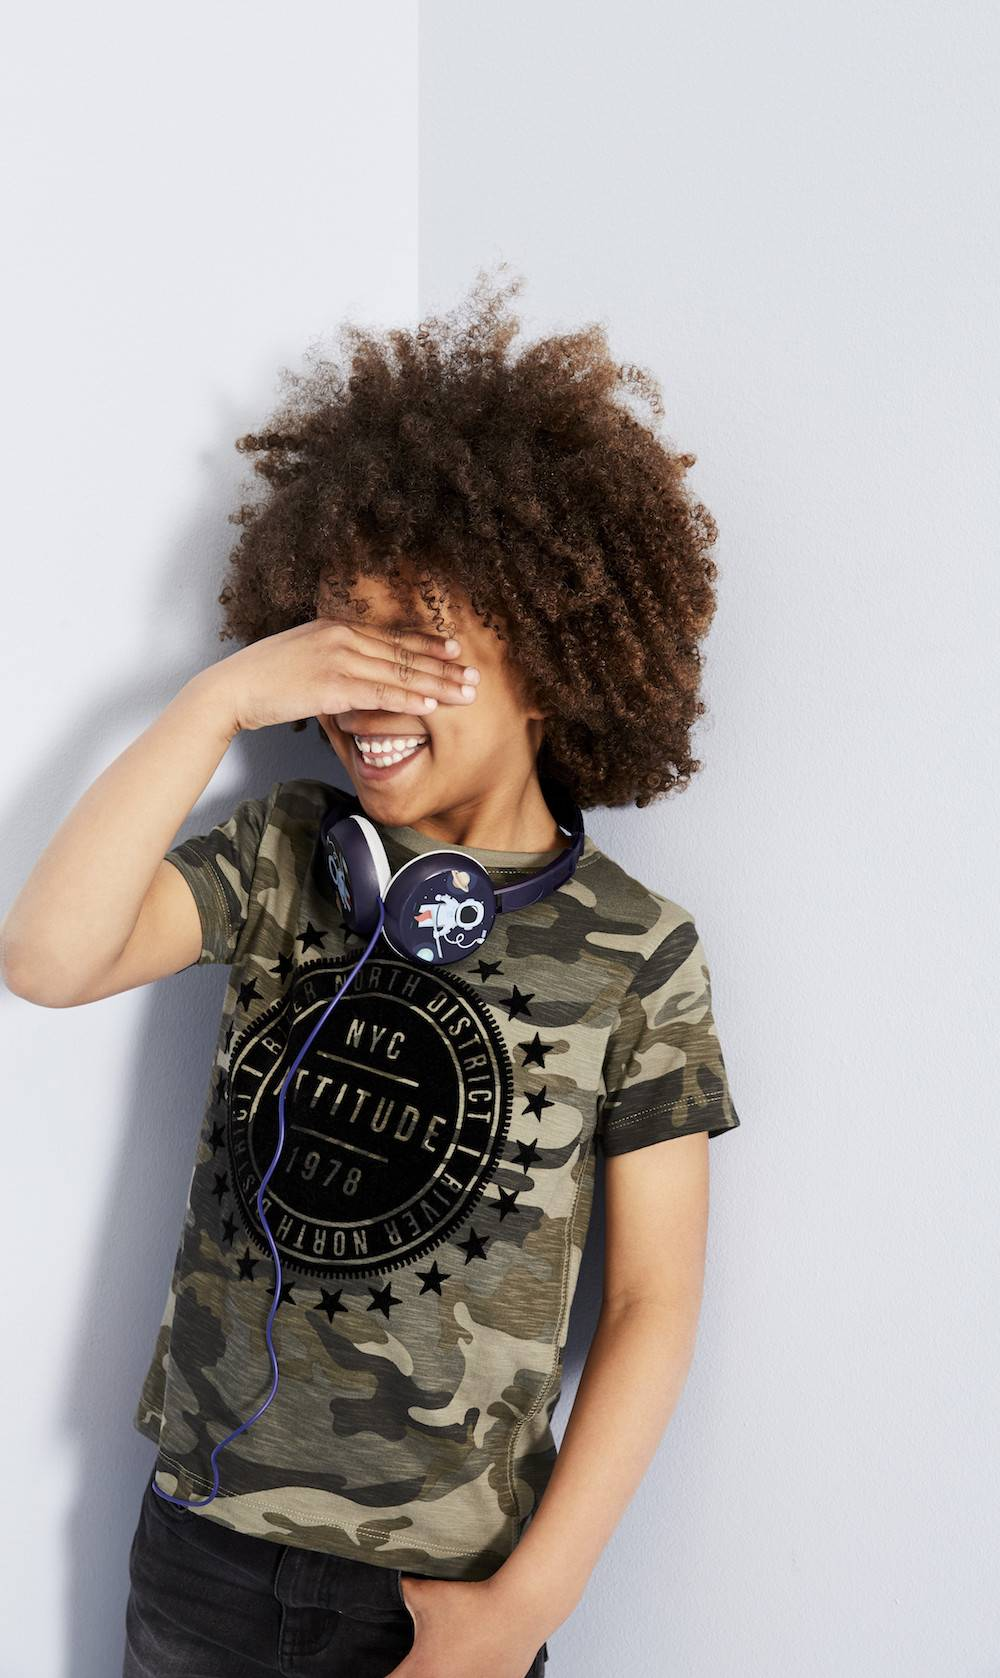 Primark_AW17_335003_RBO_YOUNGER_BOY_6-080